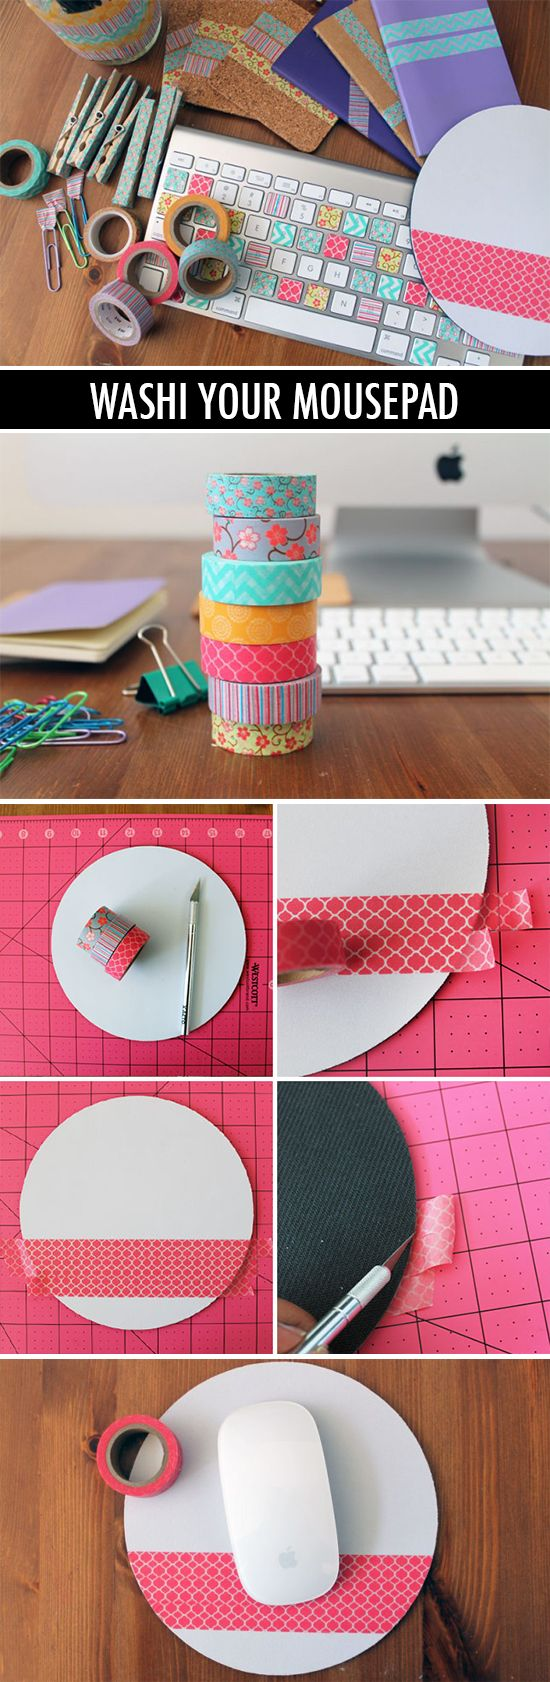 Cutest and easiest DIY project ever Washi